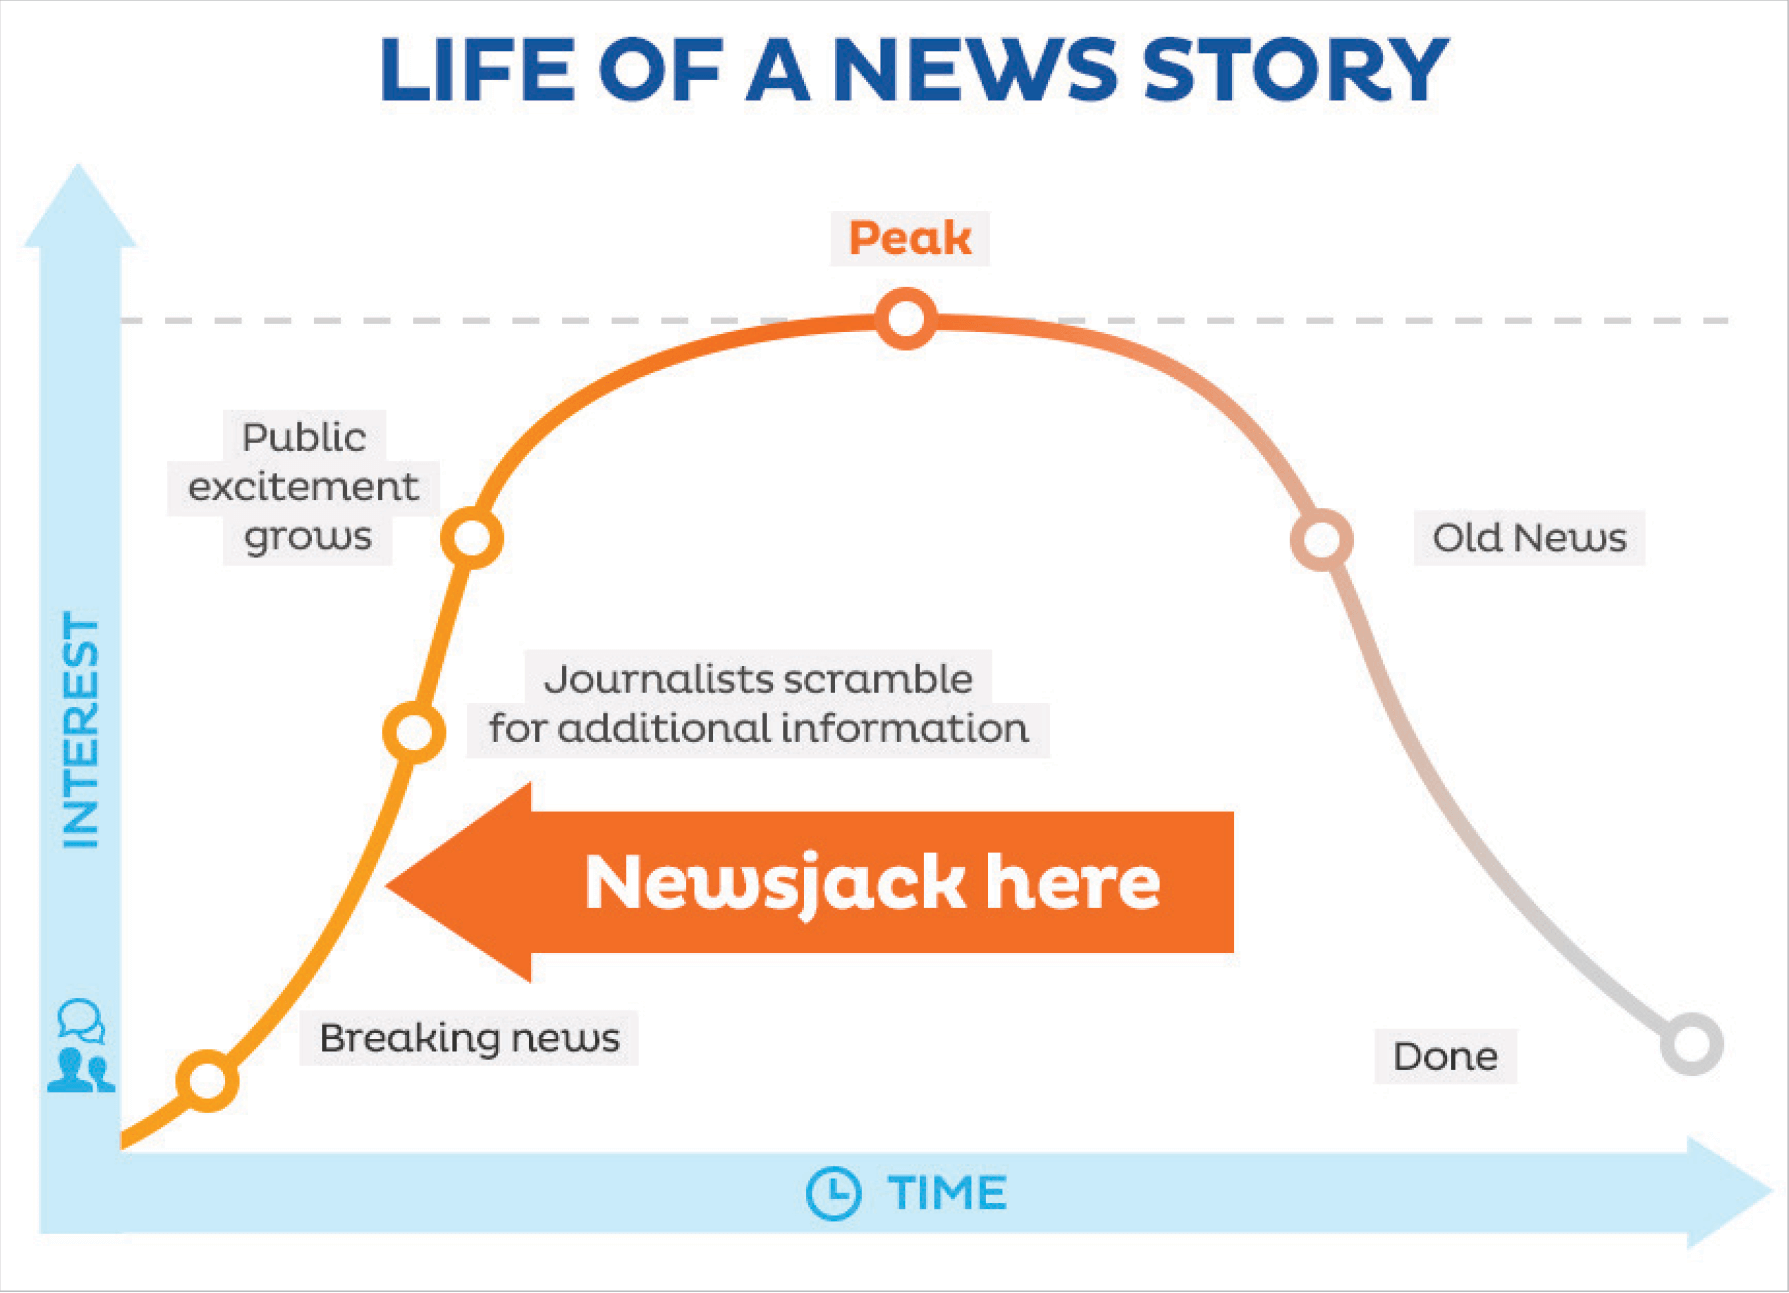 Picture 1 - A graph by David Meerman Scott - the best time to newsjack a story.